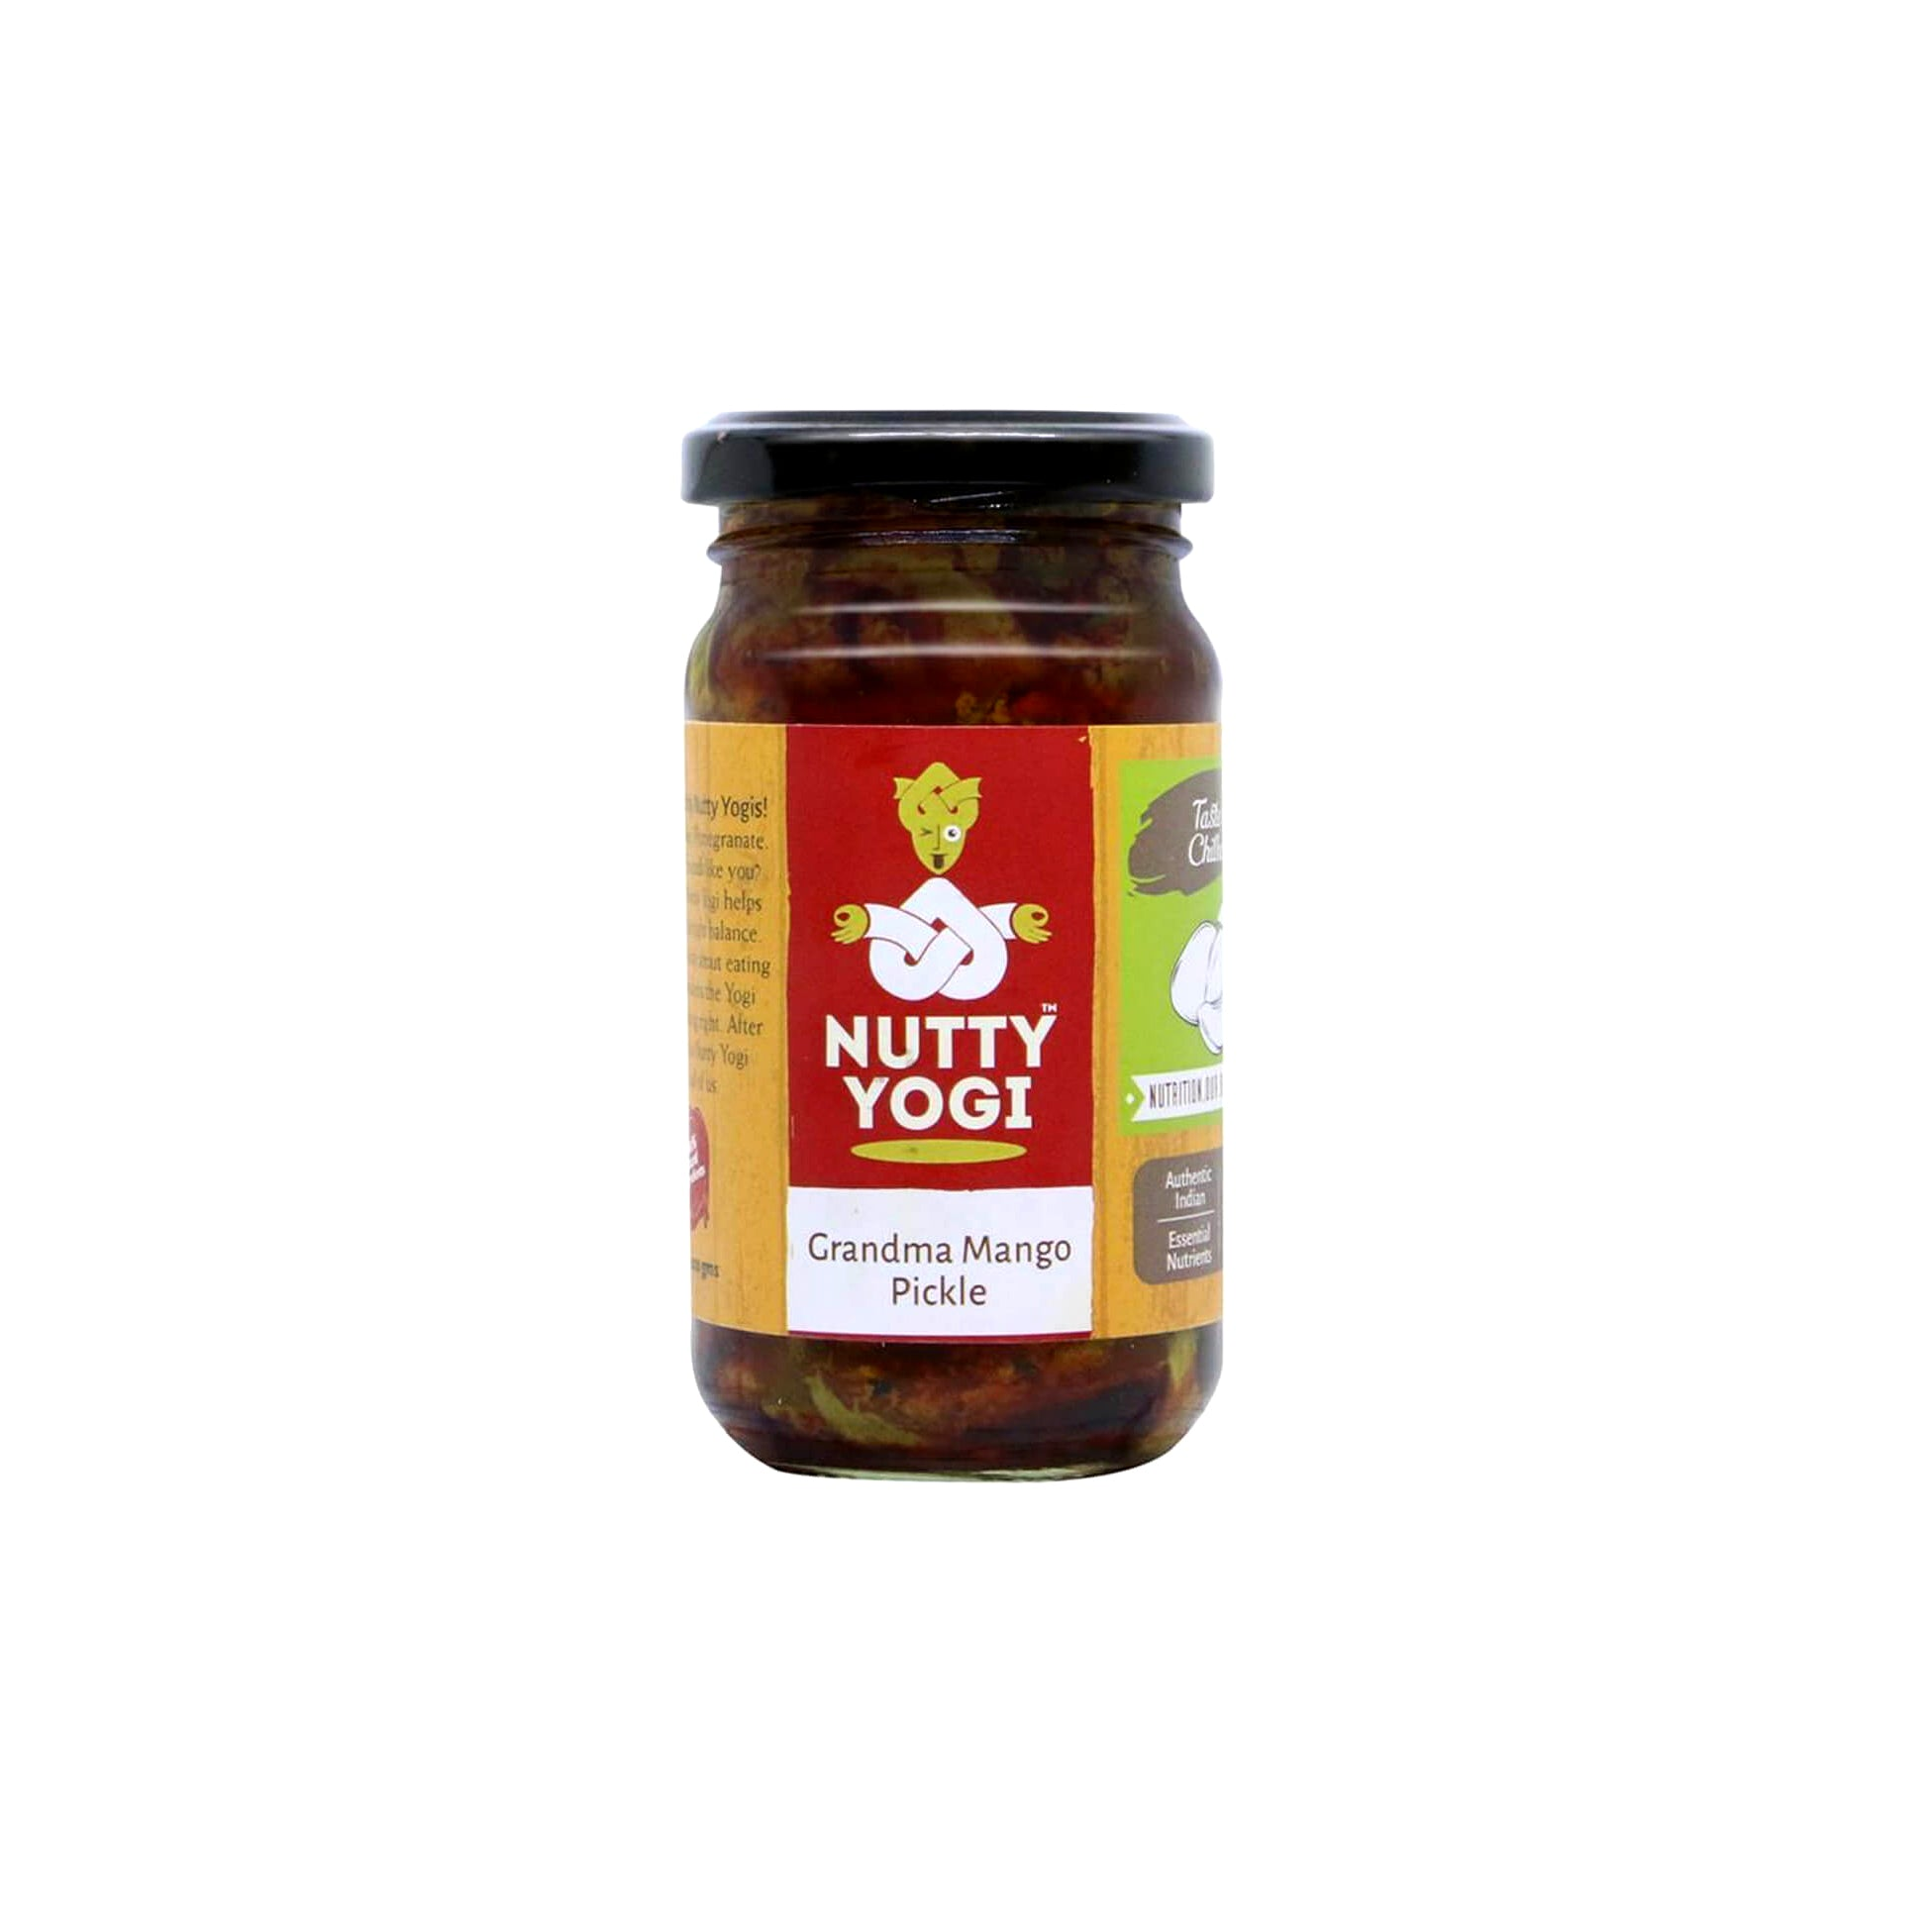 Nutty Yogi Grandma Mango Pickle 200gm